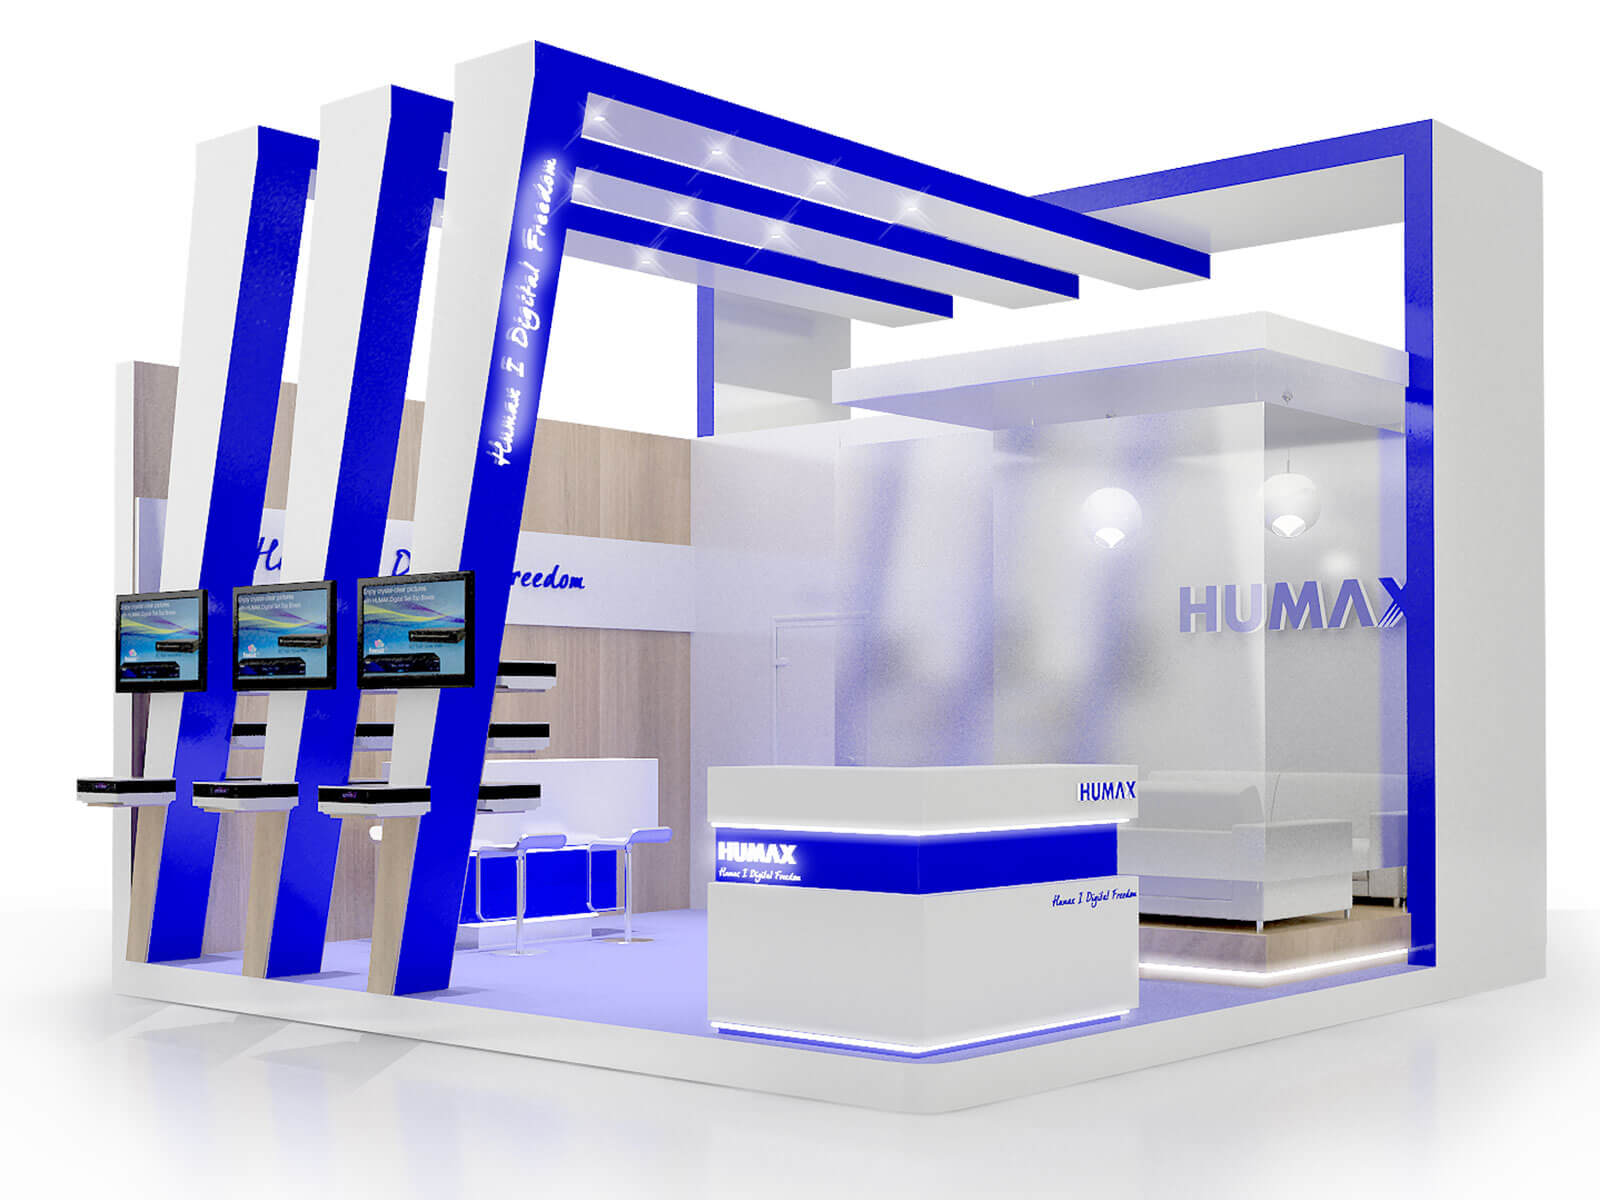 Exhibition stand design, 3d exhibition design, London, UK.